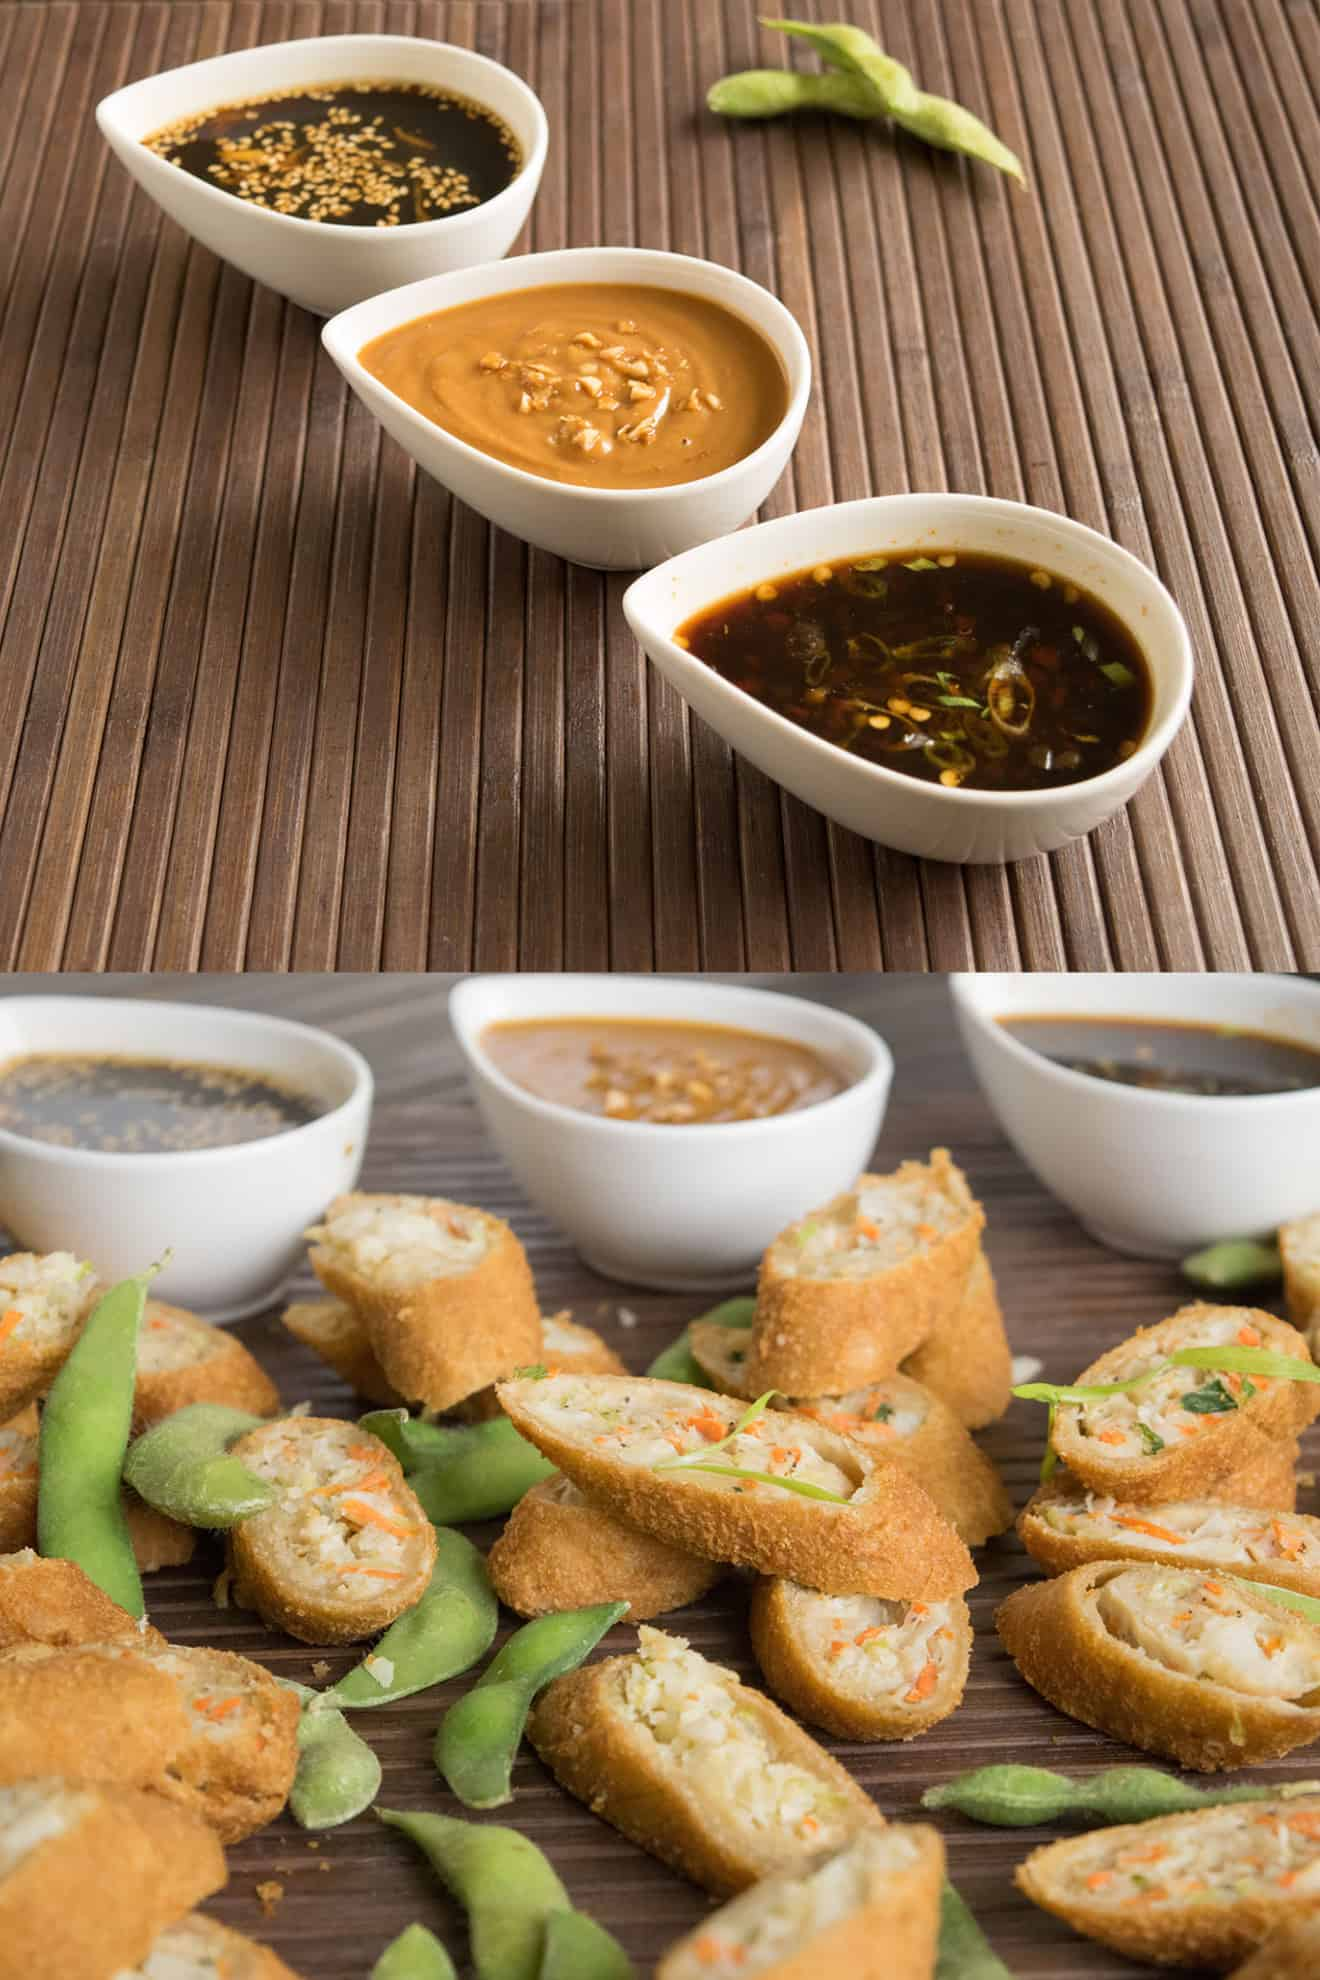 Cut spring rolls with Asian dipping sauces